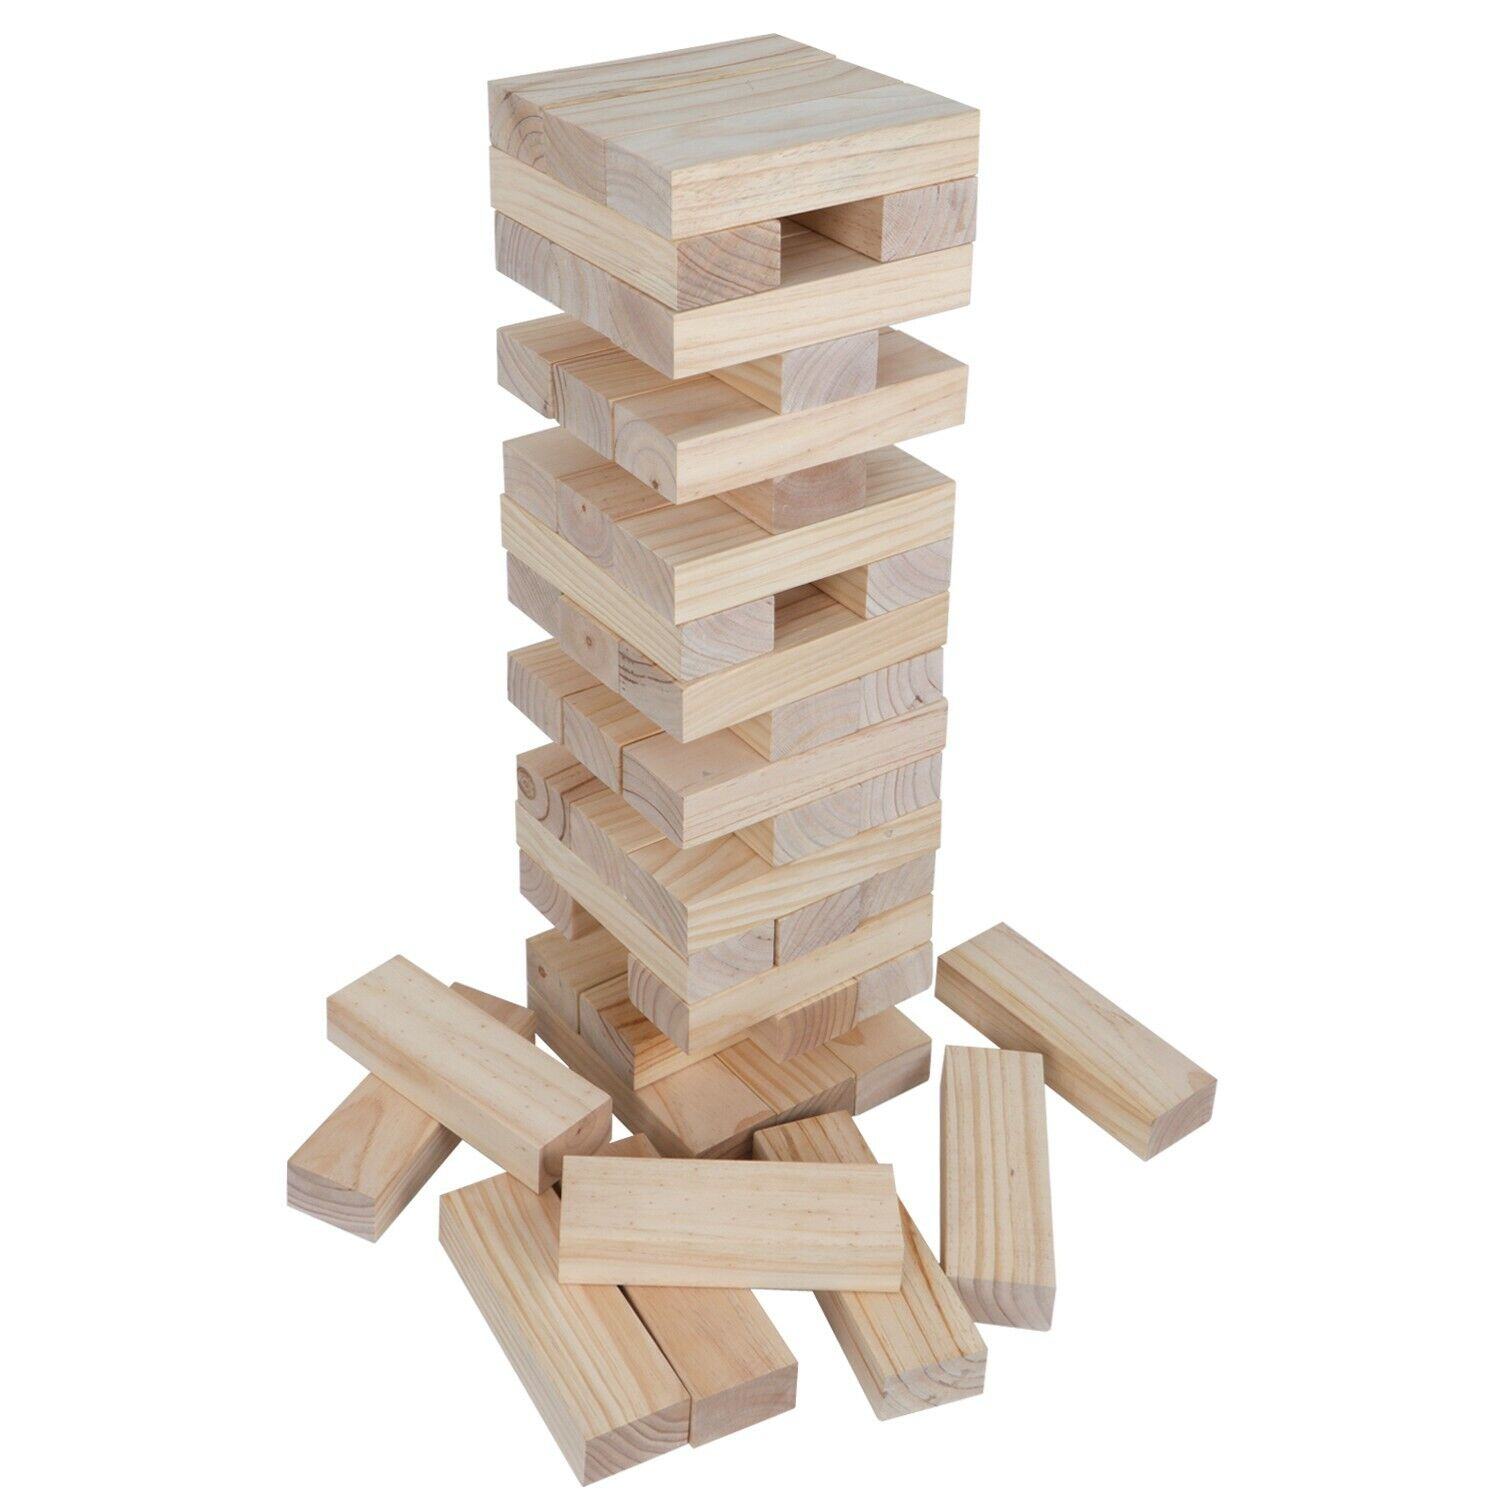 Toppling Tumble Tower Giant No Print Version With Carrying Bag 54 Pieces Backyard Games